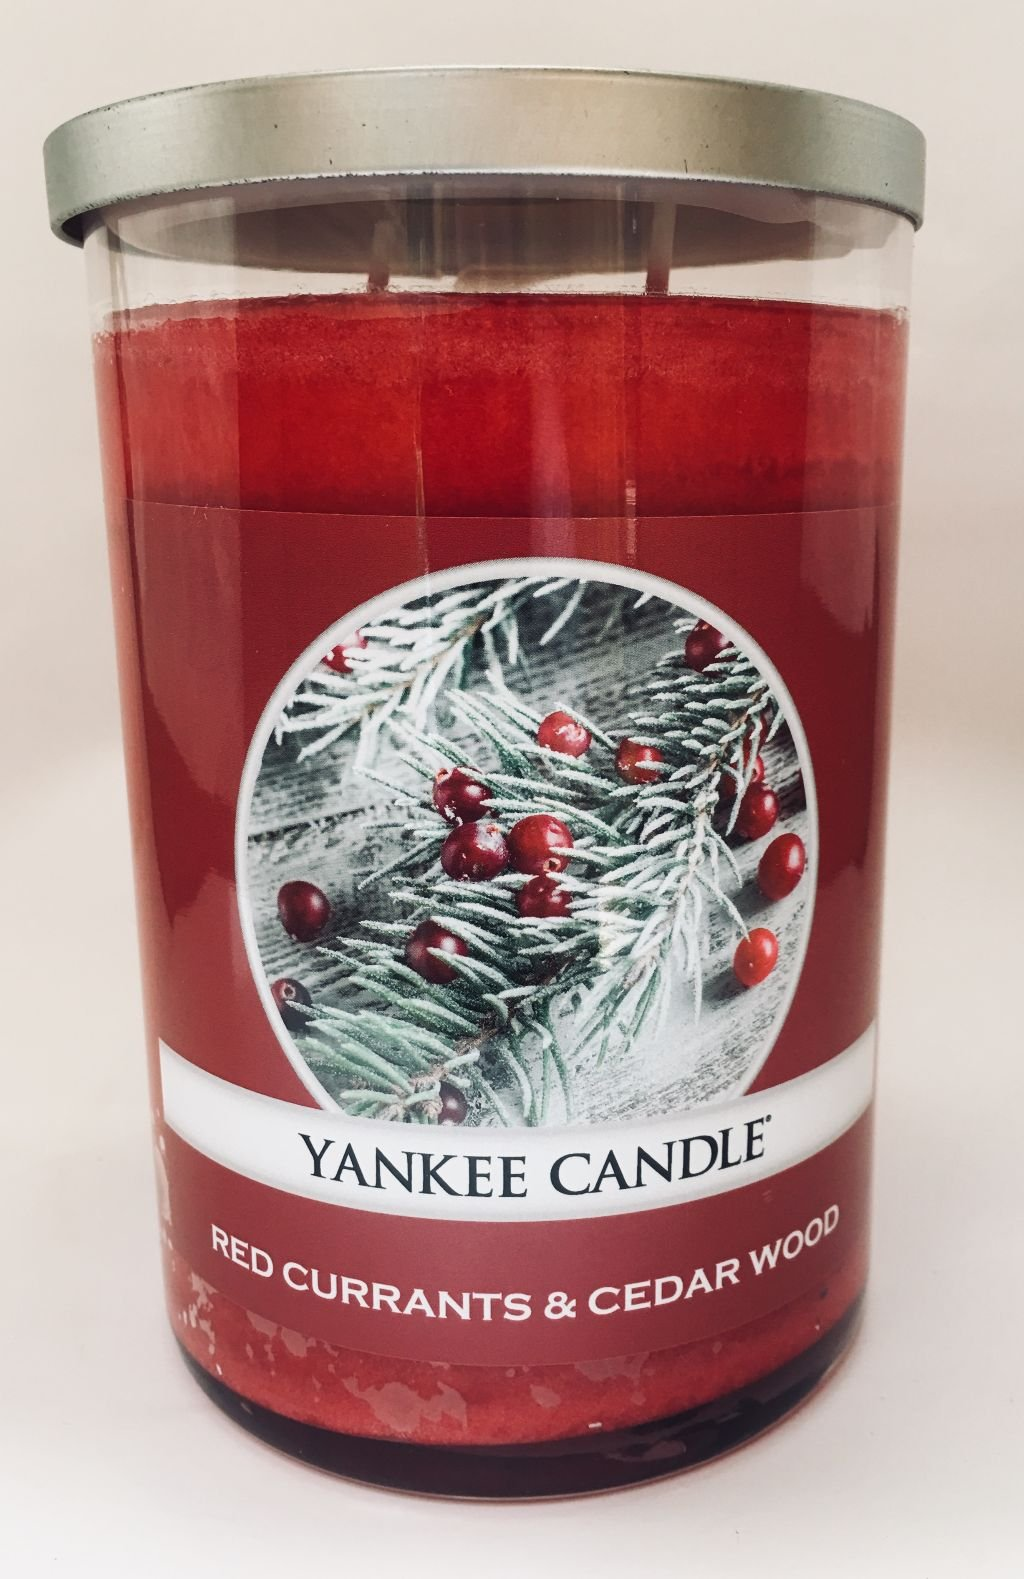 Yankee Candle Large 2 Wick RED CURRANTS & CEDAR WOOD Tumbler Candle